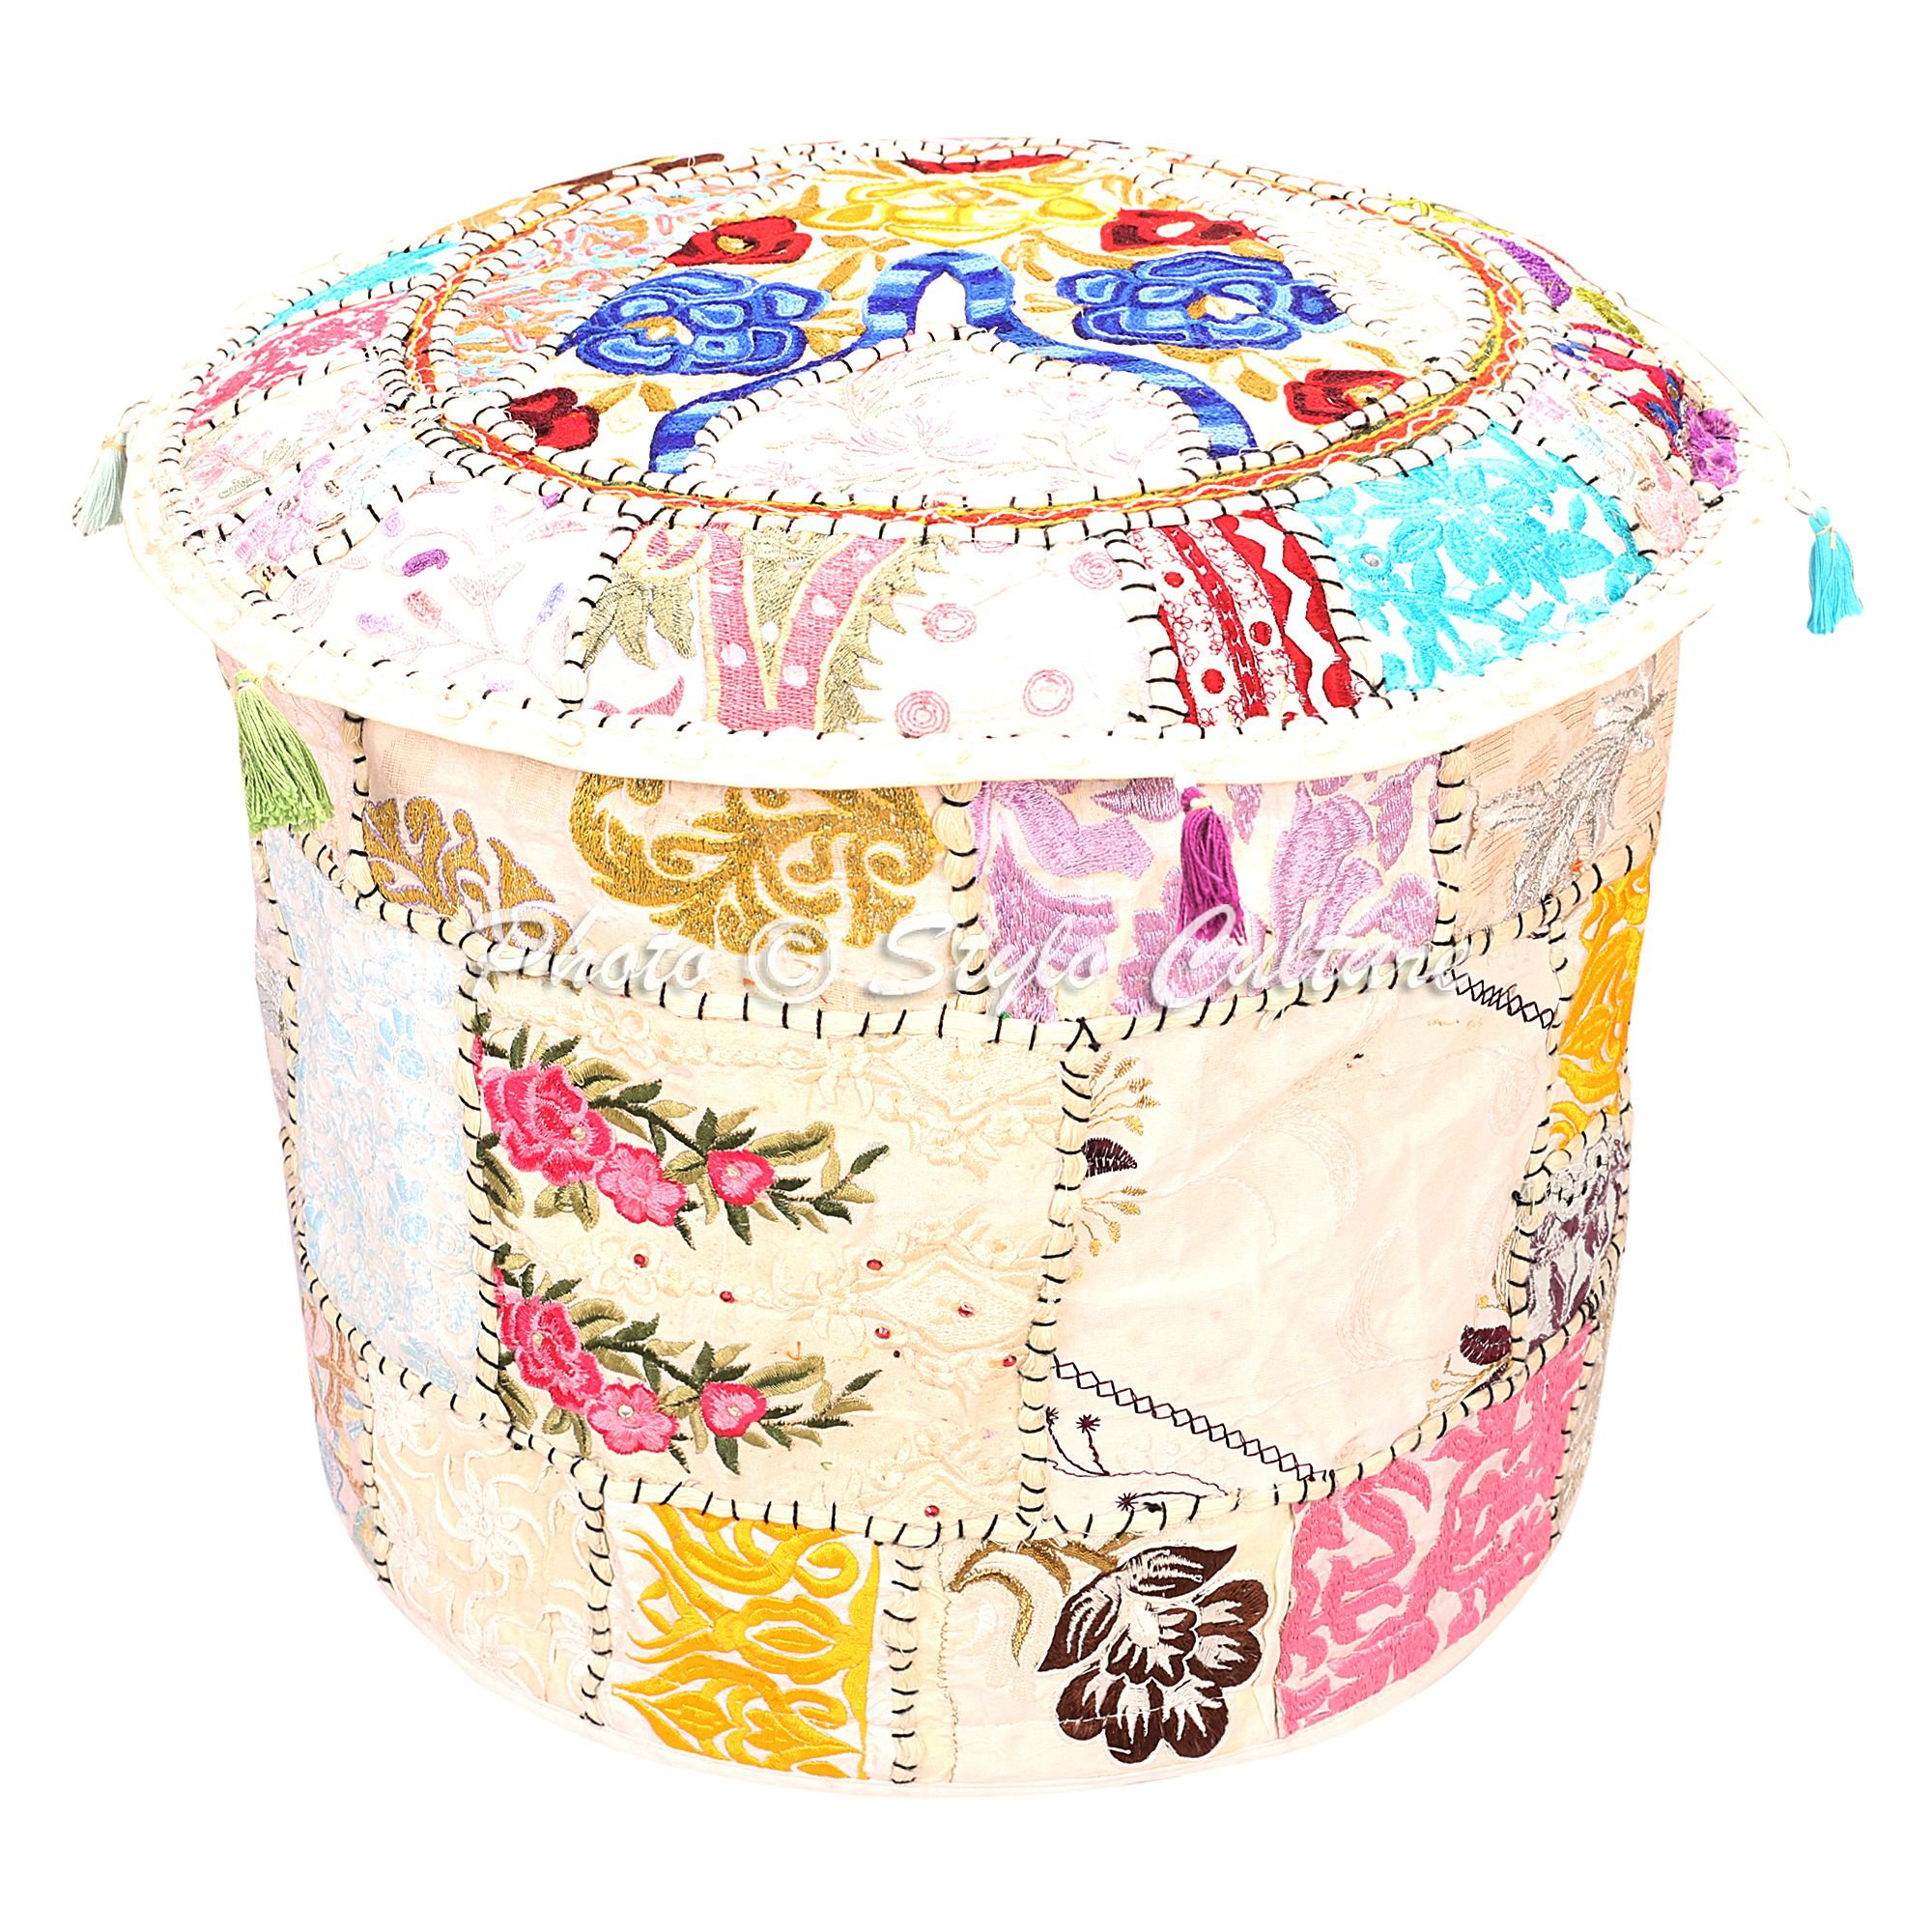 Stylo Culture Bohemian Round Pouf Ottoman Cover Indian Patchwork Embroidered Pouffe Ottoman Cover White Cotton Floral Traditional Furniture Footstool Seat Foot Rest Puff Cover (18x18x13)